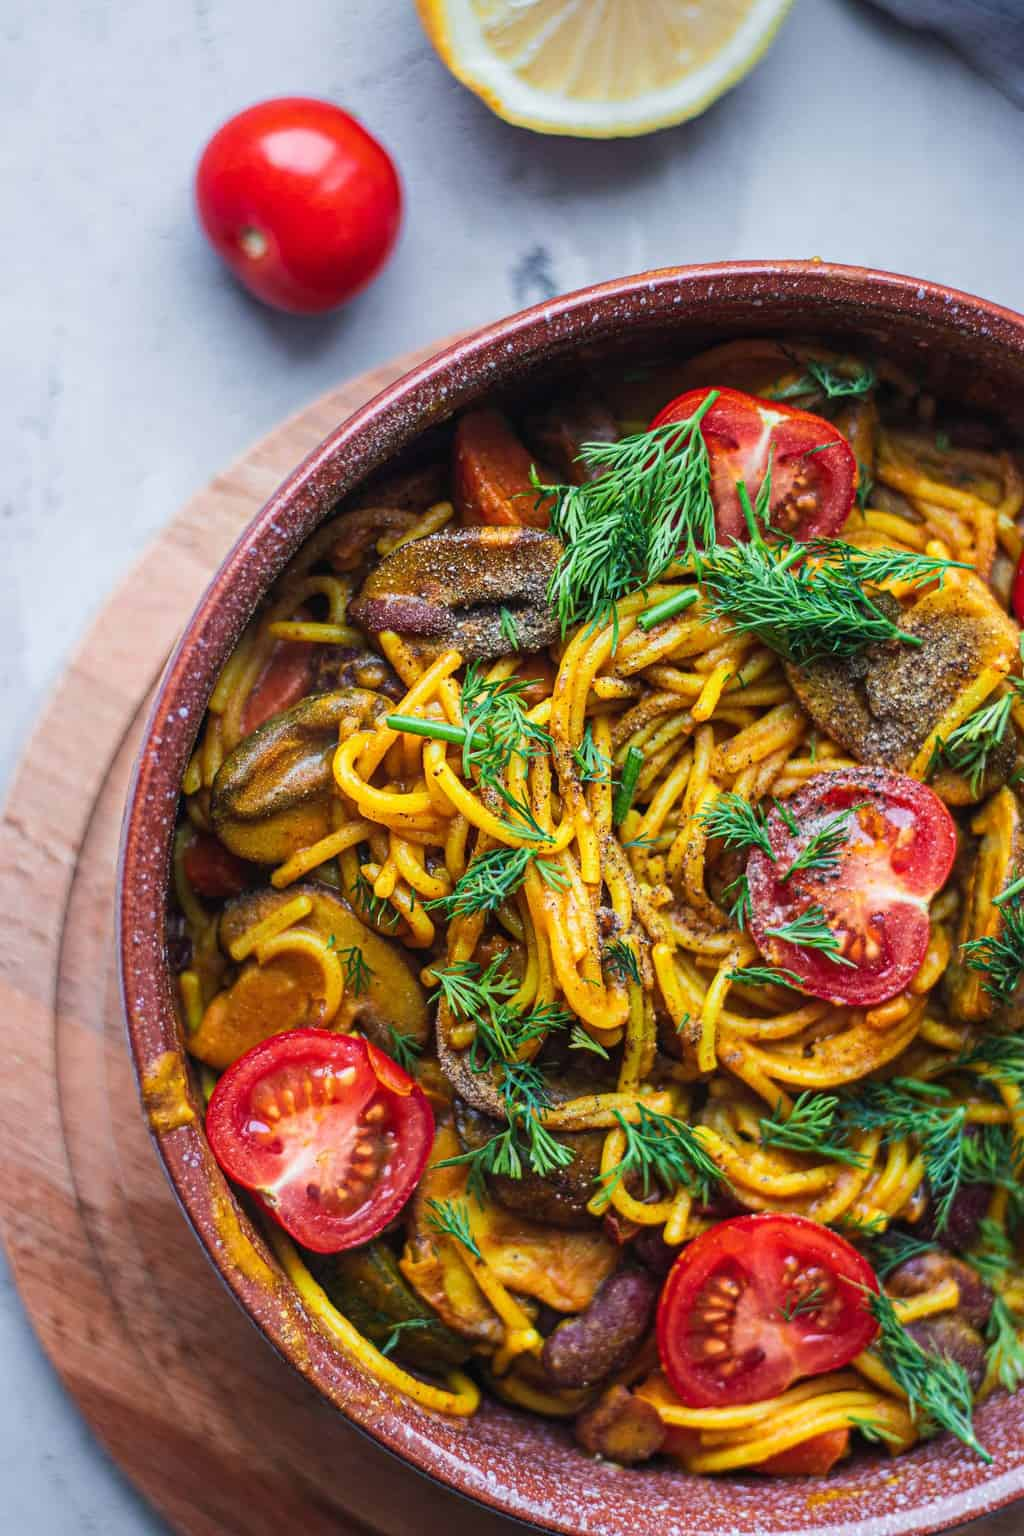 Vegan one pot pasta with mushrooms and vegetables